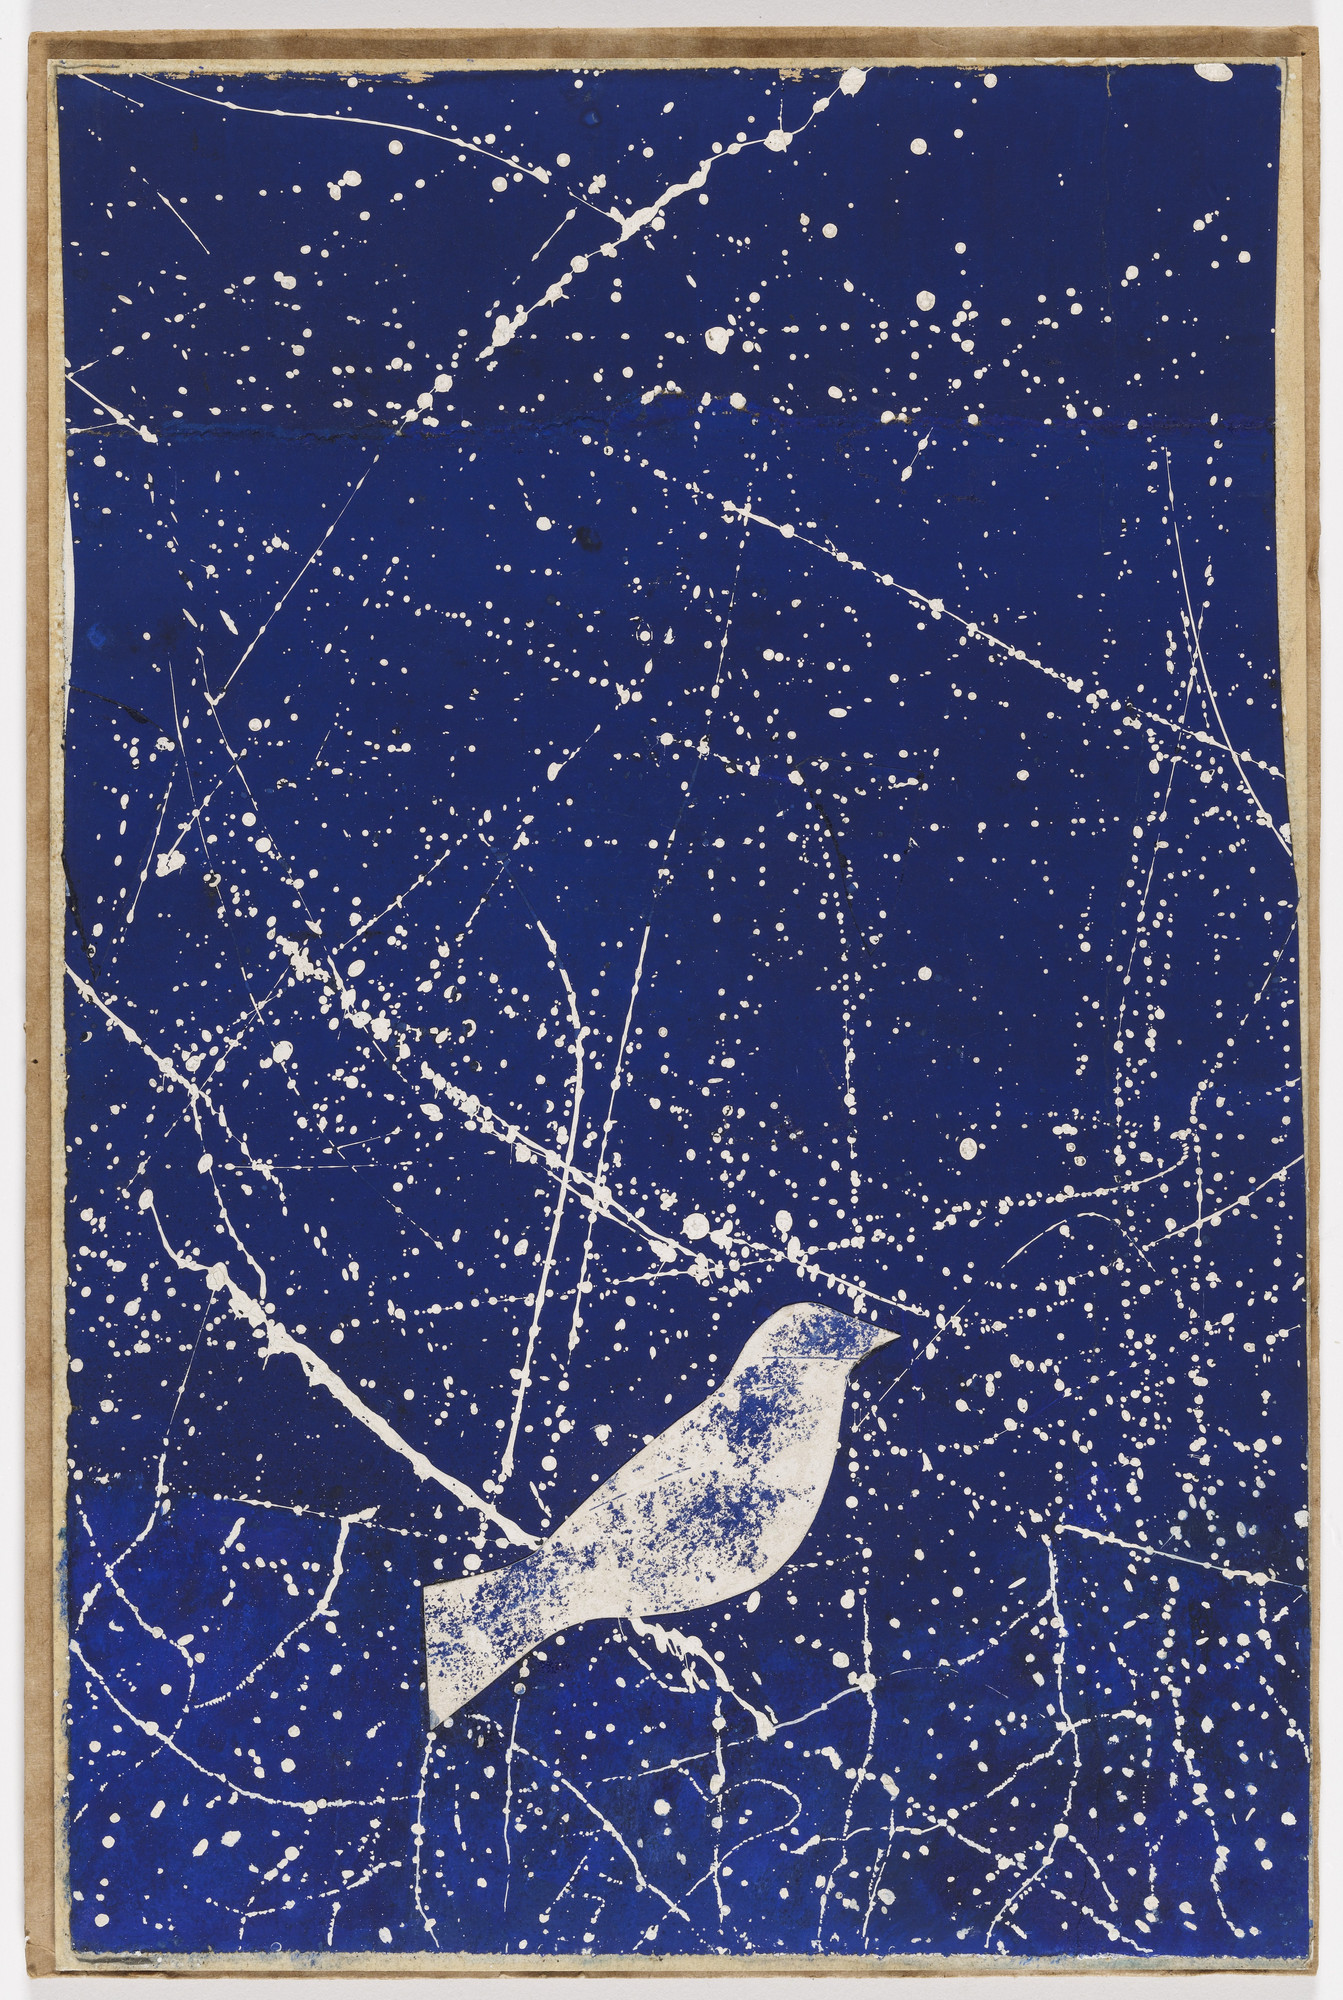 Joseph Cornell. Constellation (Project for a Christmas card). 1953